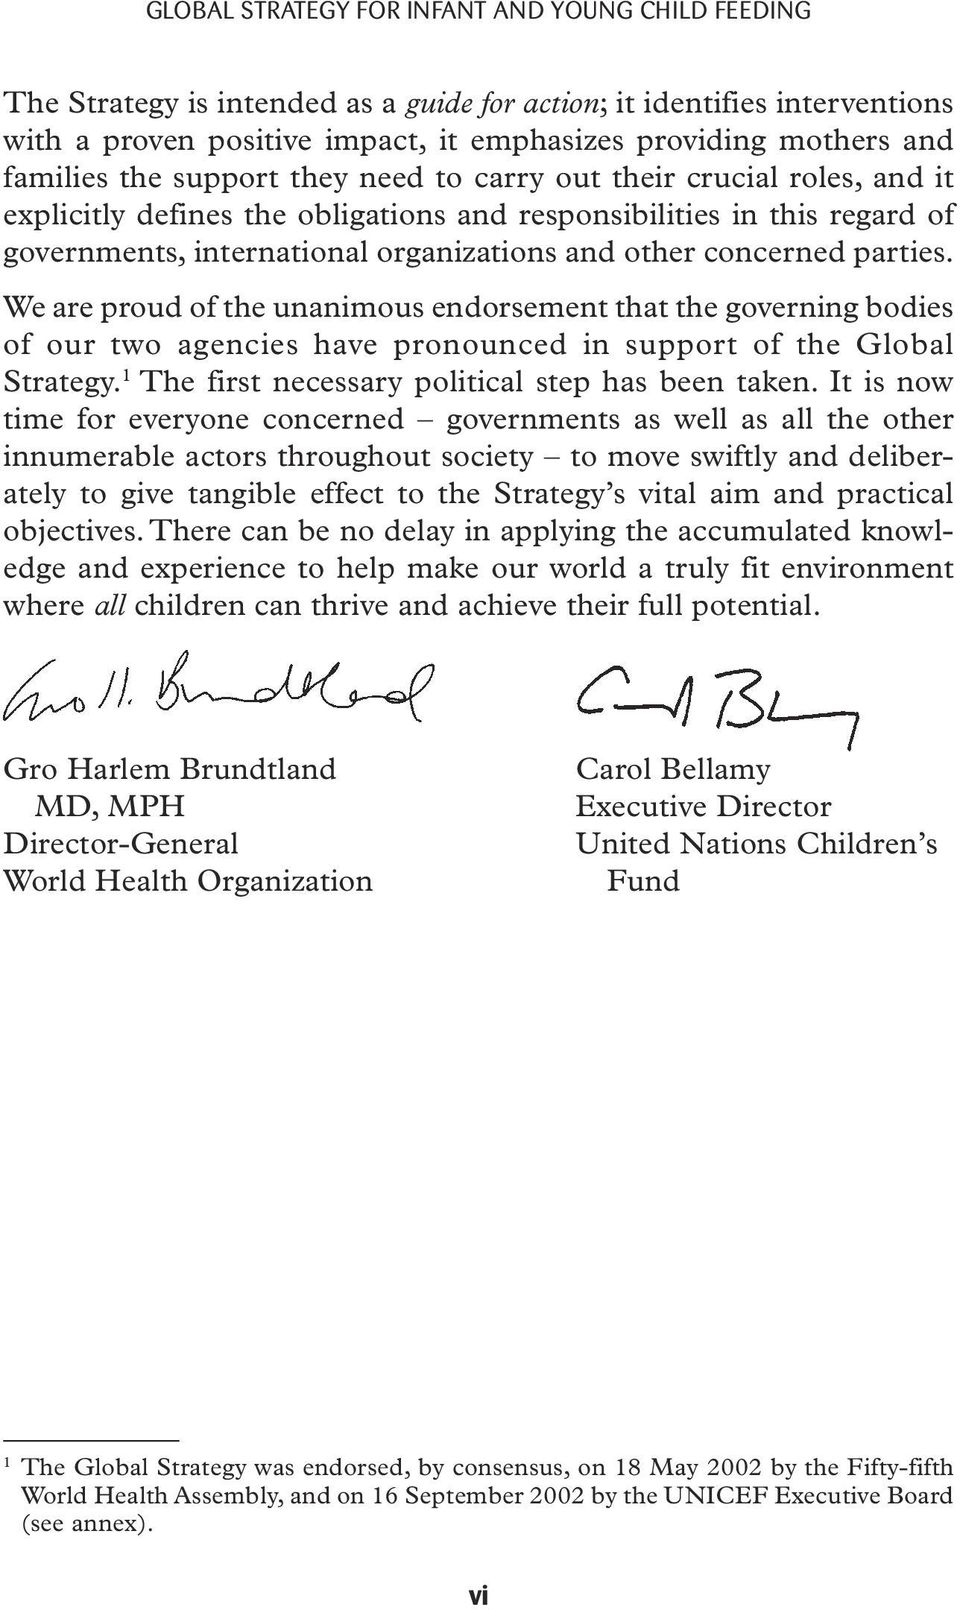 concerned parties. We are proud of the unanimous endorsement that the governing bodies of our two agencies have pronounced in support of the Global Strategy.